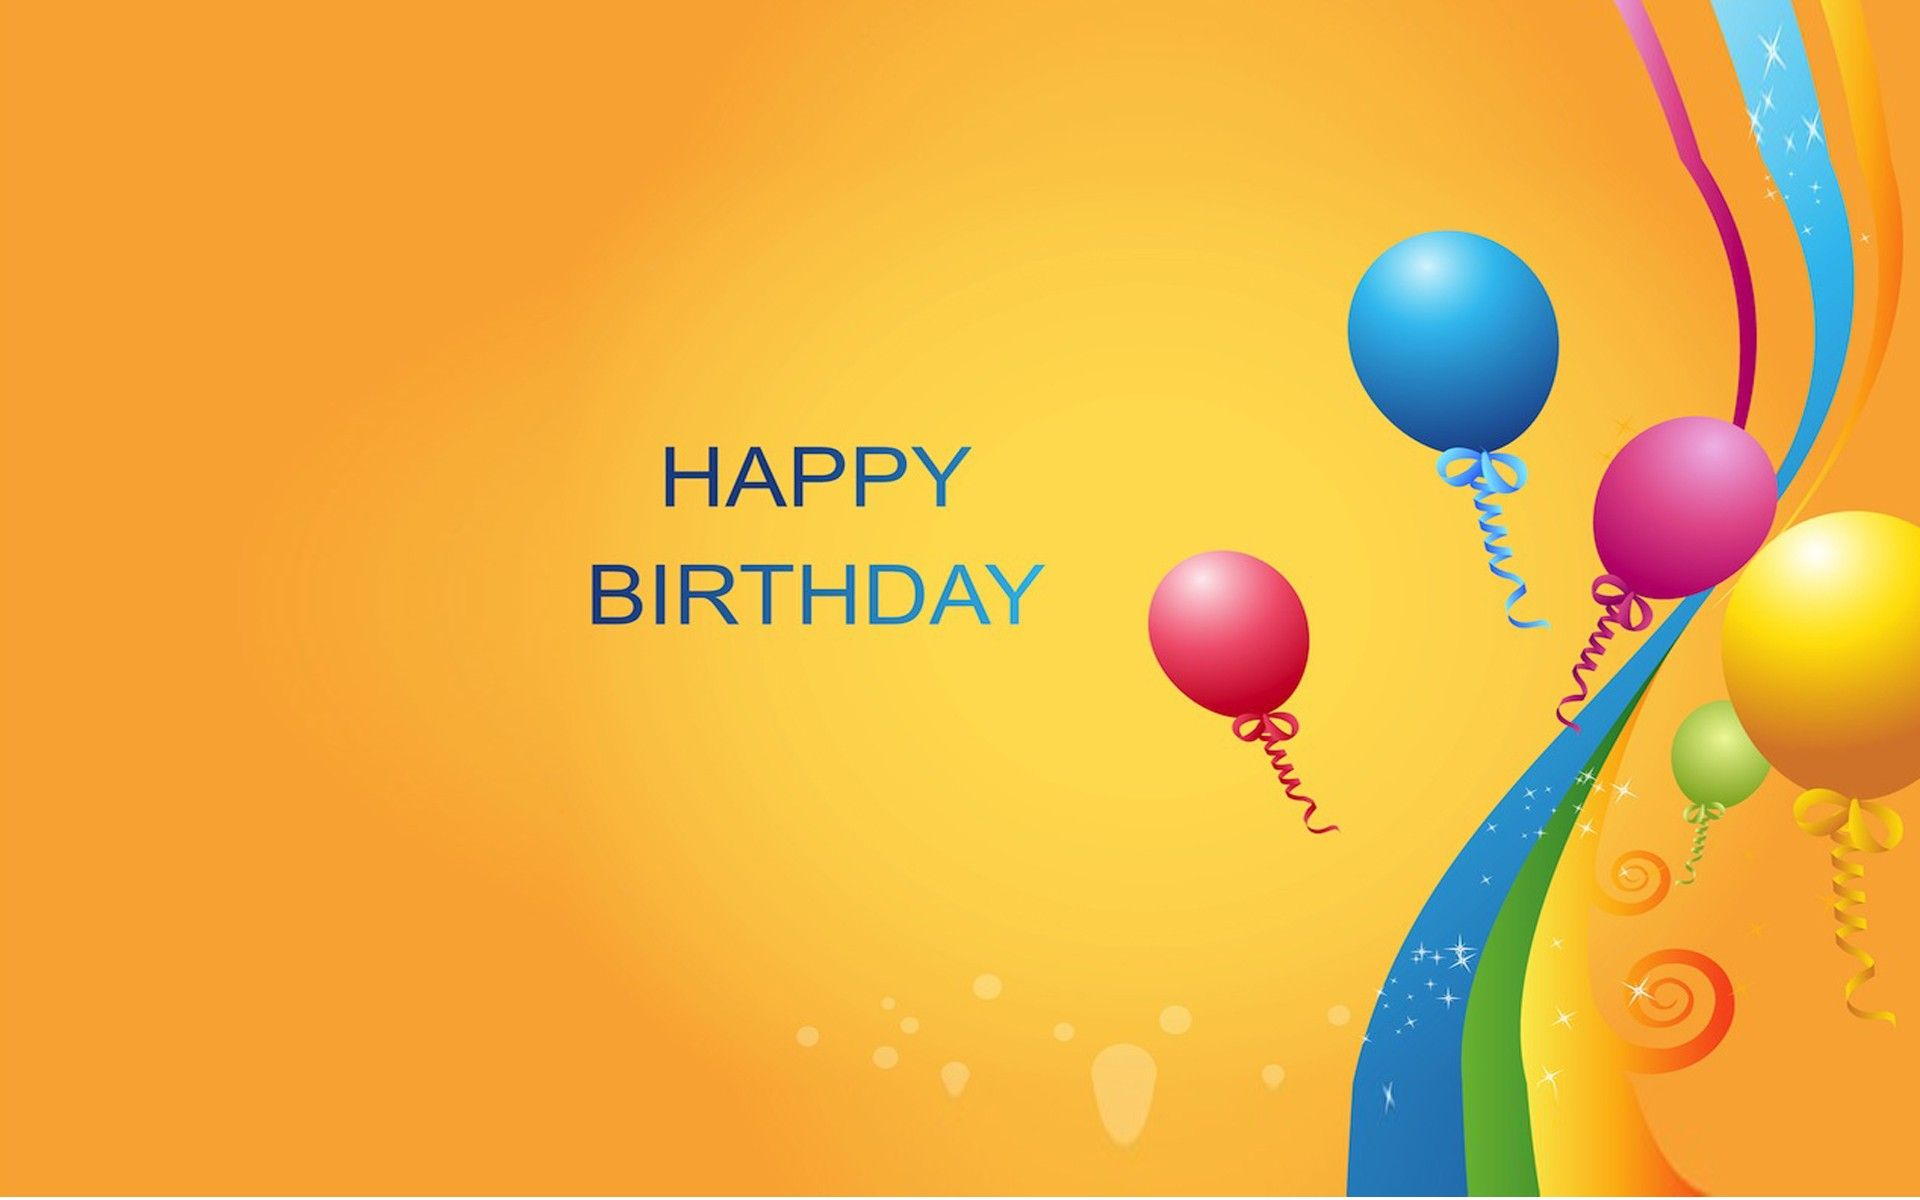 Hd wallpaper birthday - Explore Happy Birthday Greeting Card And More